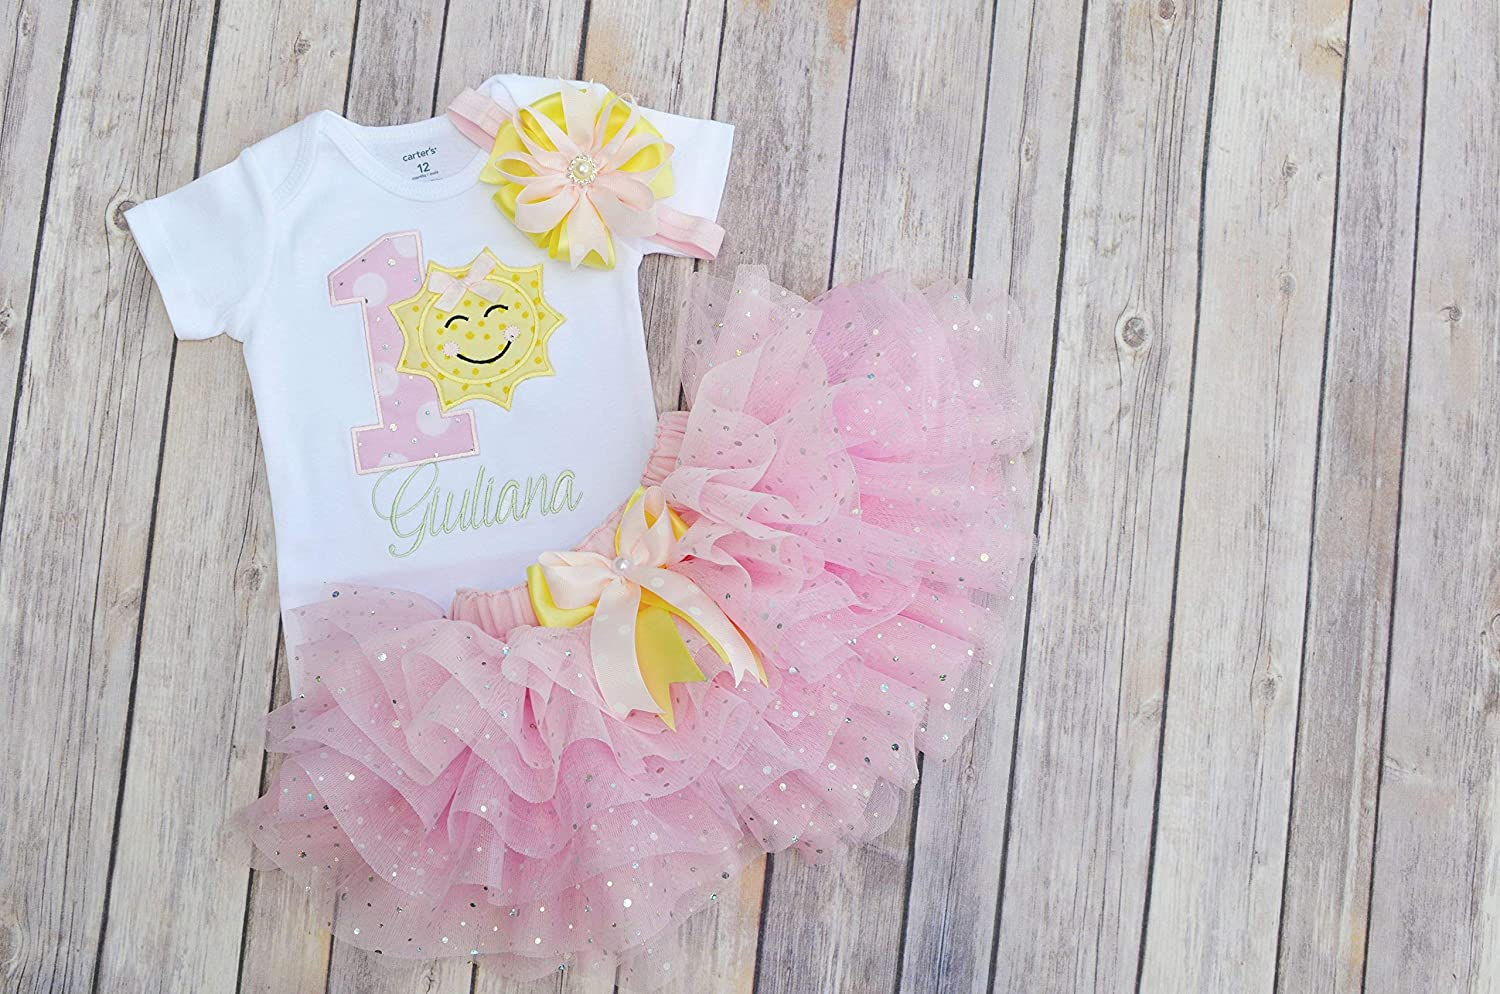 79c93a5df Amazon.com: You Are My Sunshine Birthday Outfit,first Birthday Outfit  Girl,pink yellow mint birthday,sparkly pink tutu girl,cake smash outfit  girl: Handmade